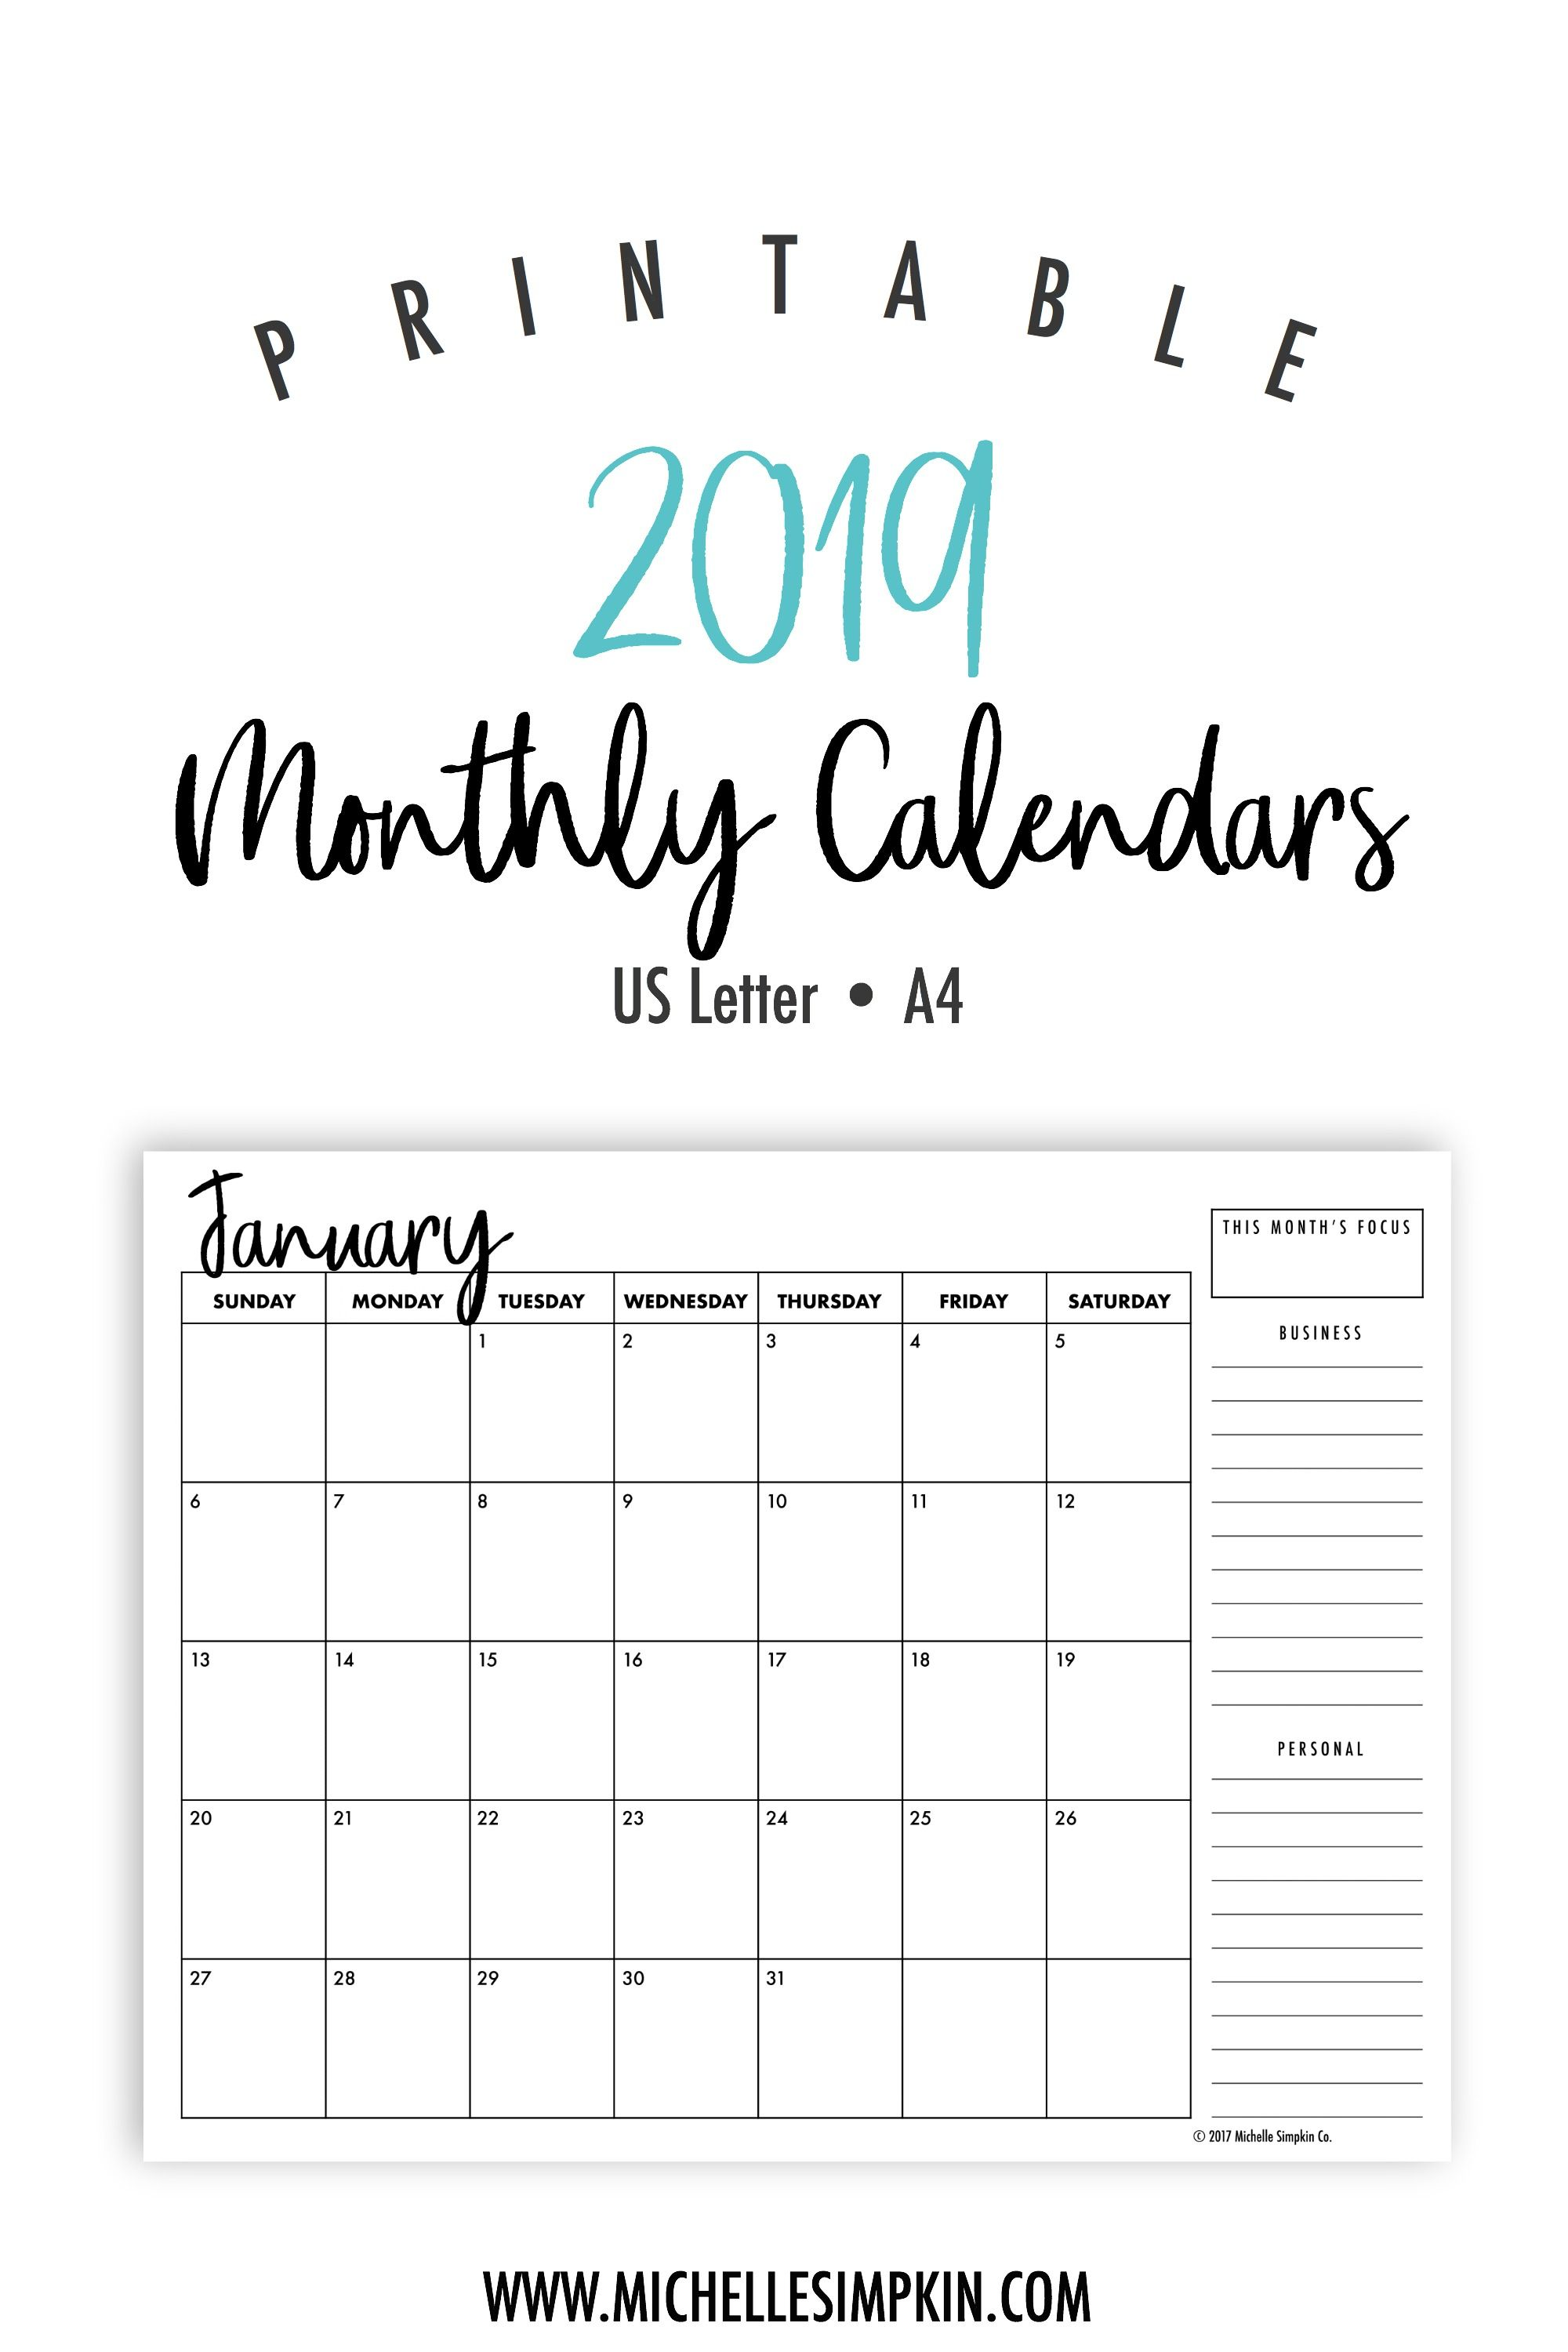 Calendar Monthly 2019 2019 Printable Monthly Calendars • Landscape • US Letter • A4